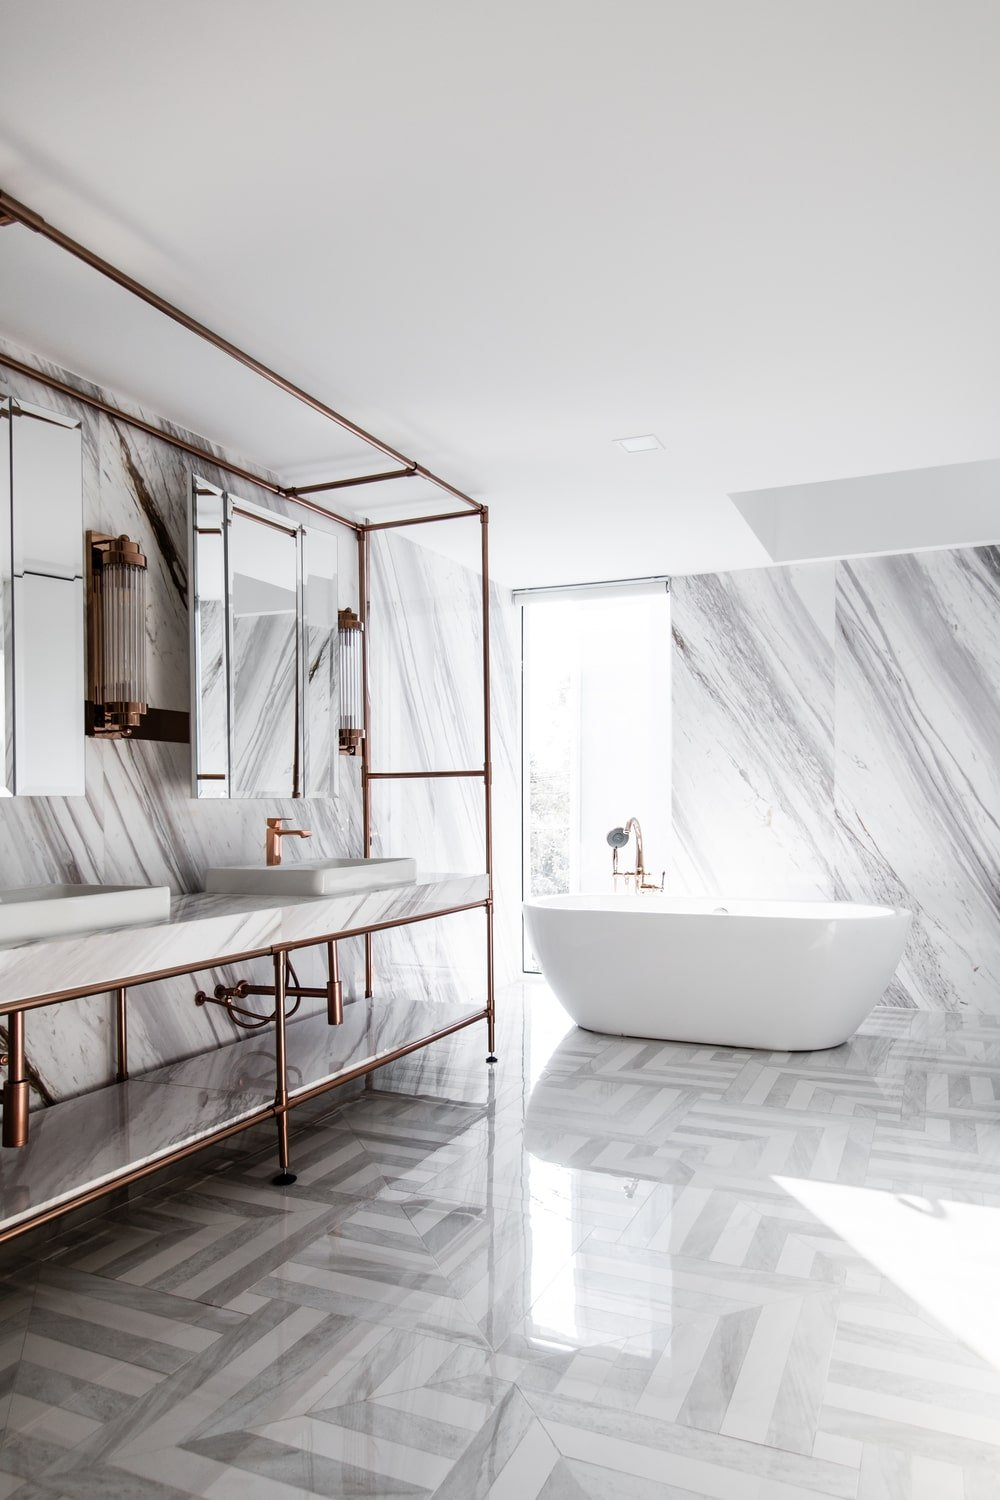 The natural lighting gives a shine to the white marble walls and patterned flooring tiles.